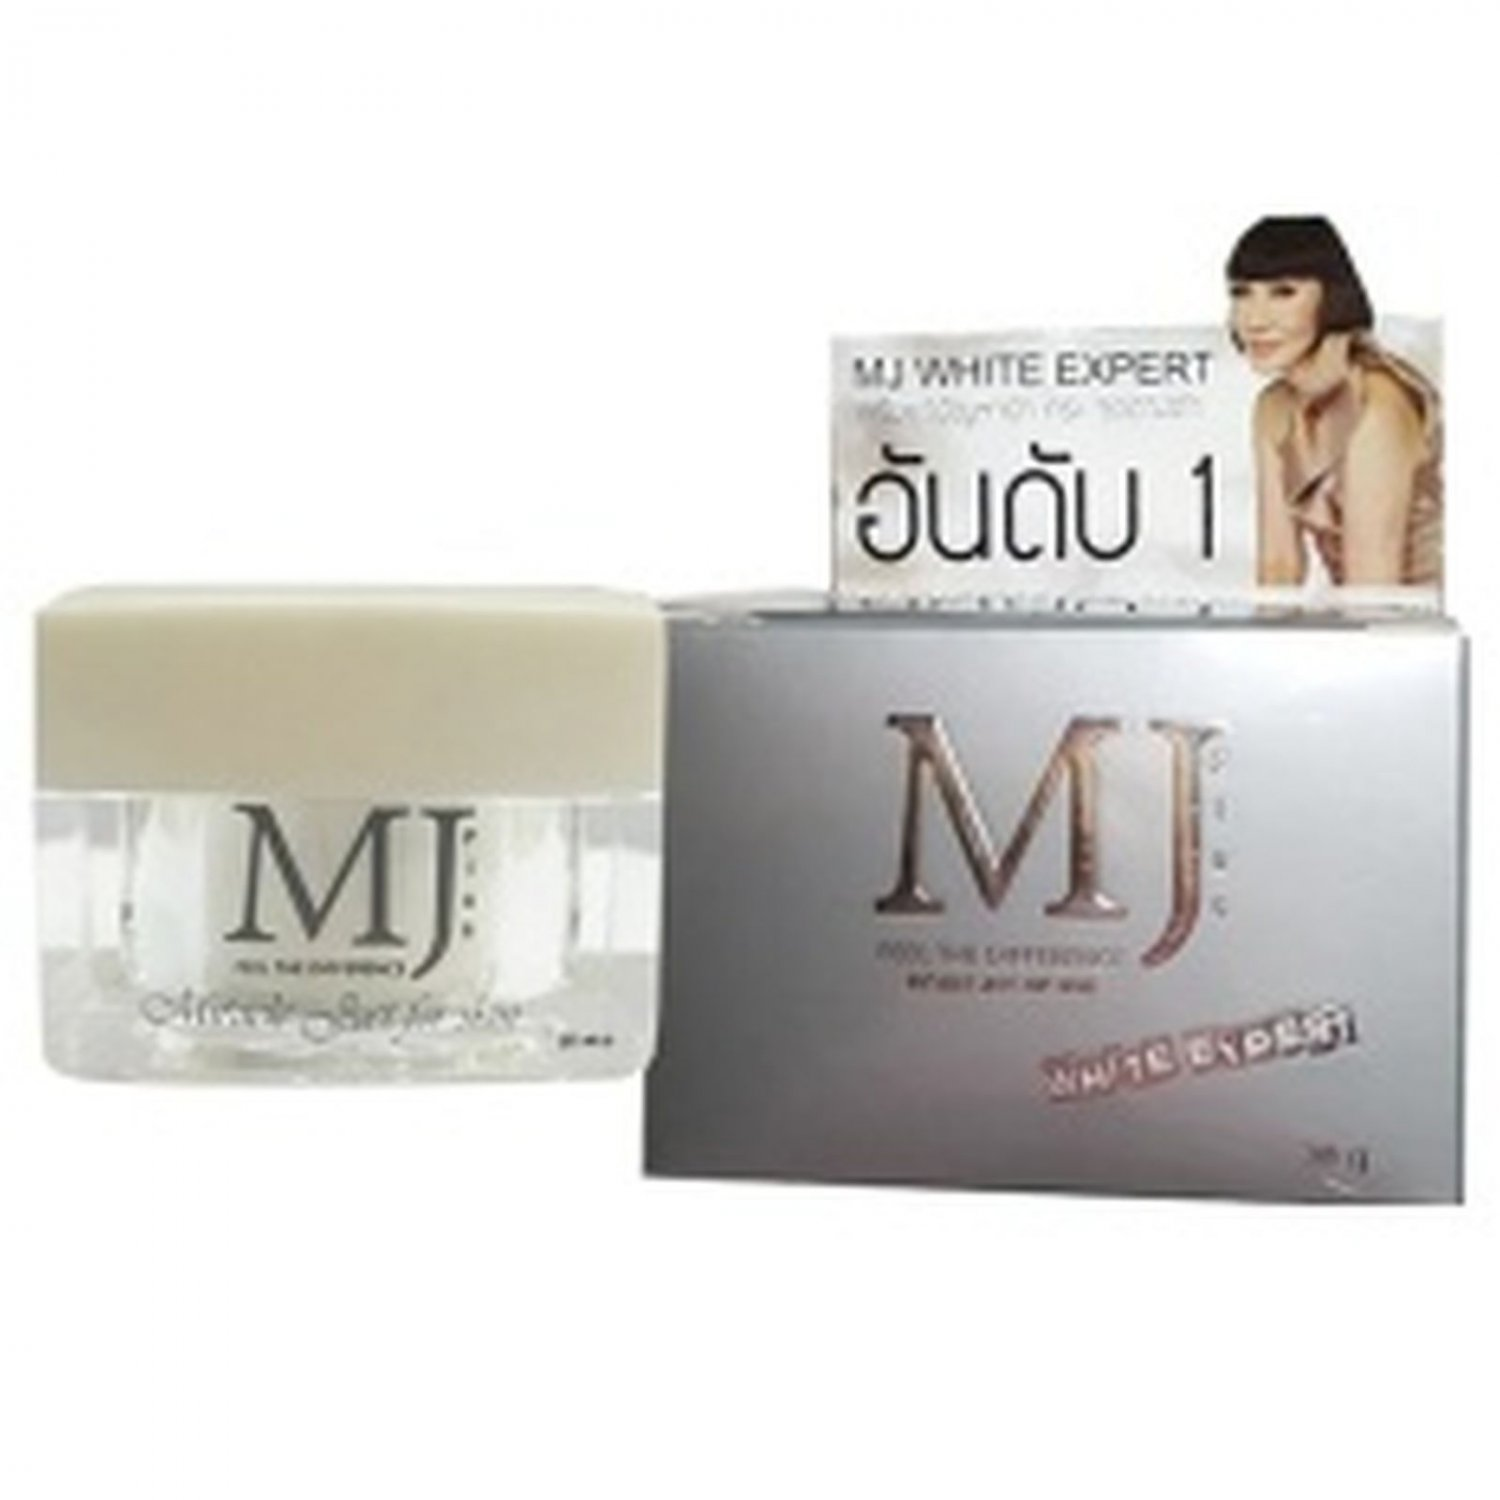 MJ Plus White Expert Cream Miracle Whitening 30g. For Skin Freckles Spots Smooth